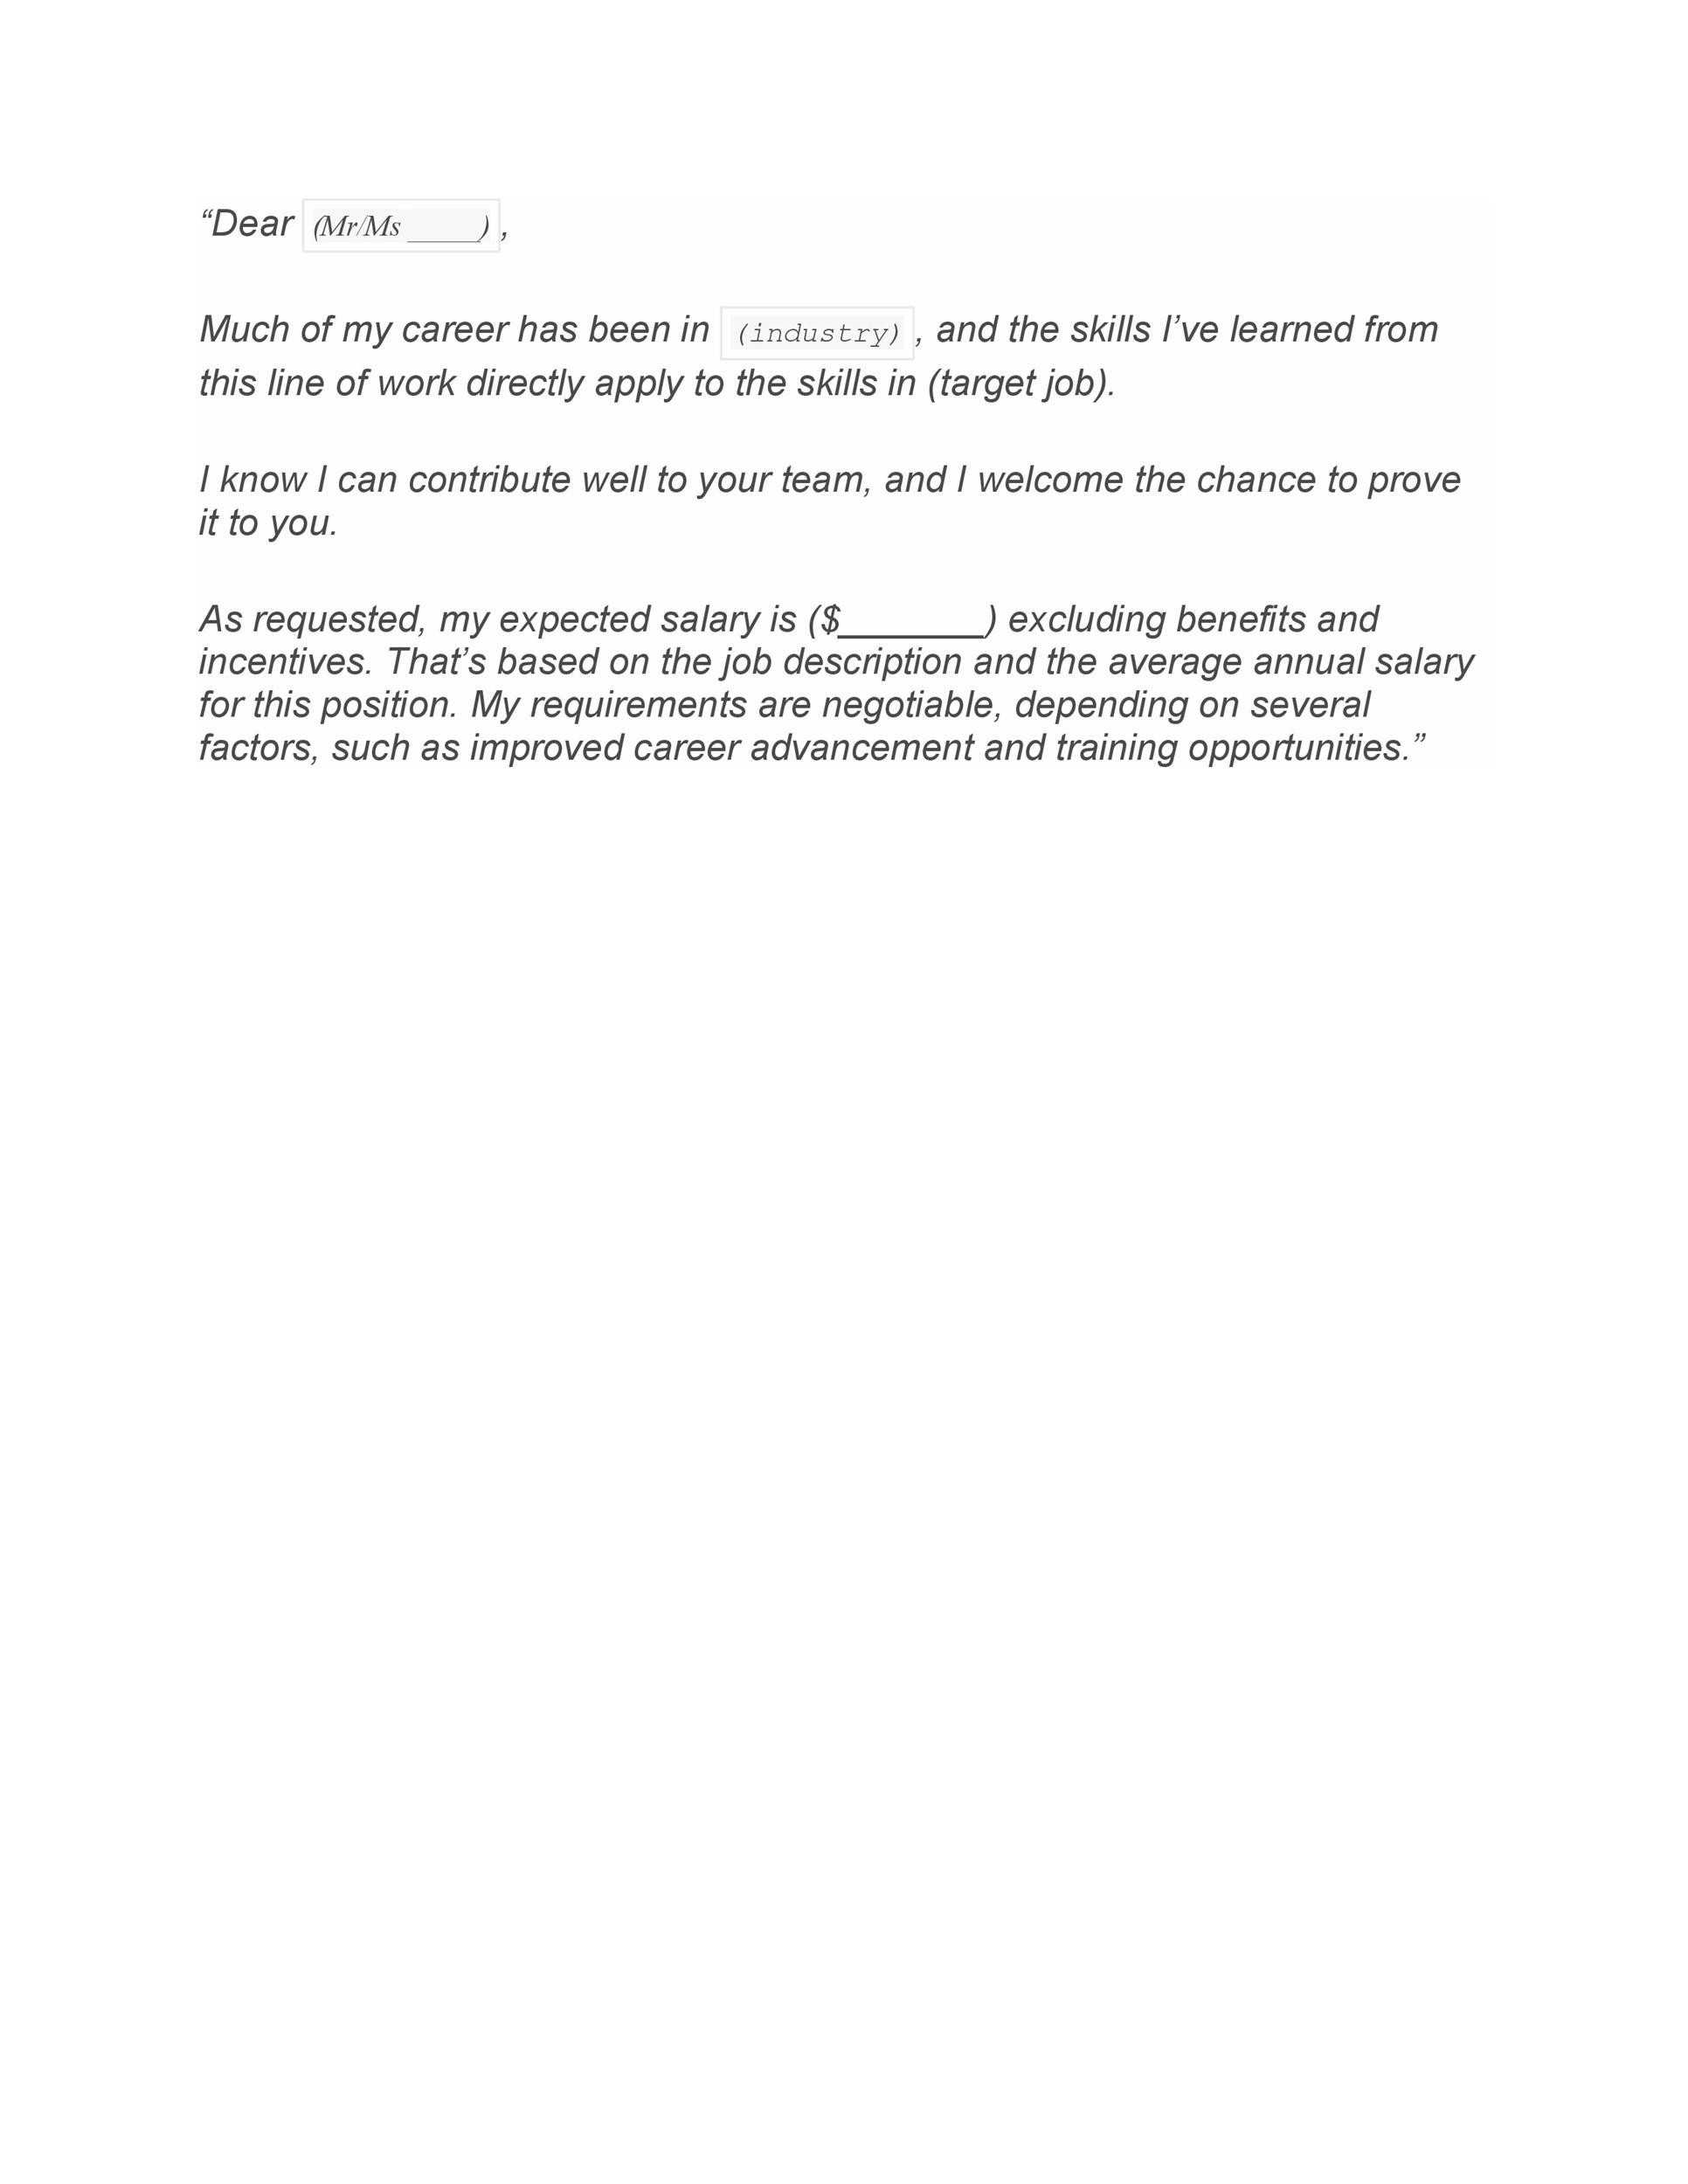 34 Best Salary Requirements Cover Letters Tips  Template Lab